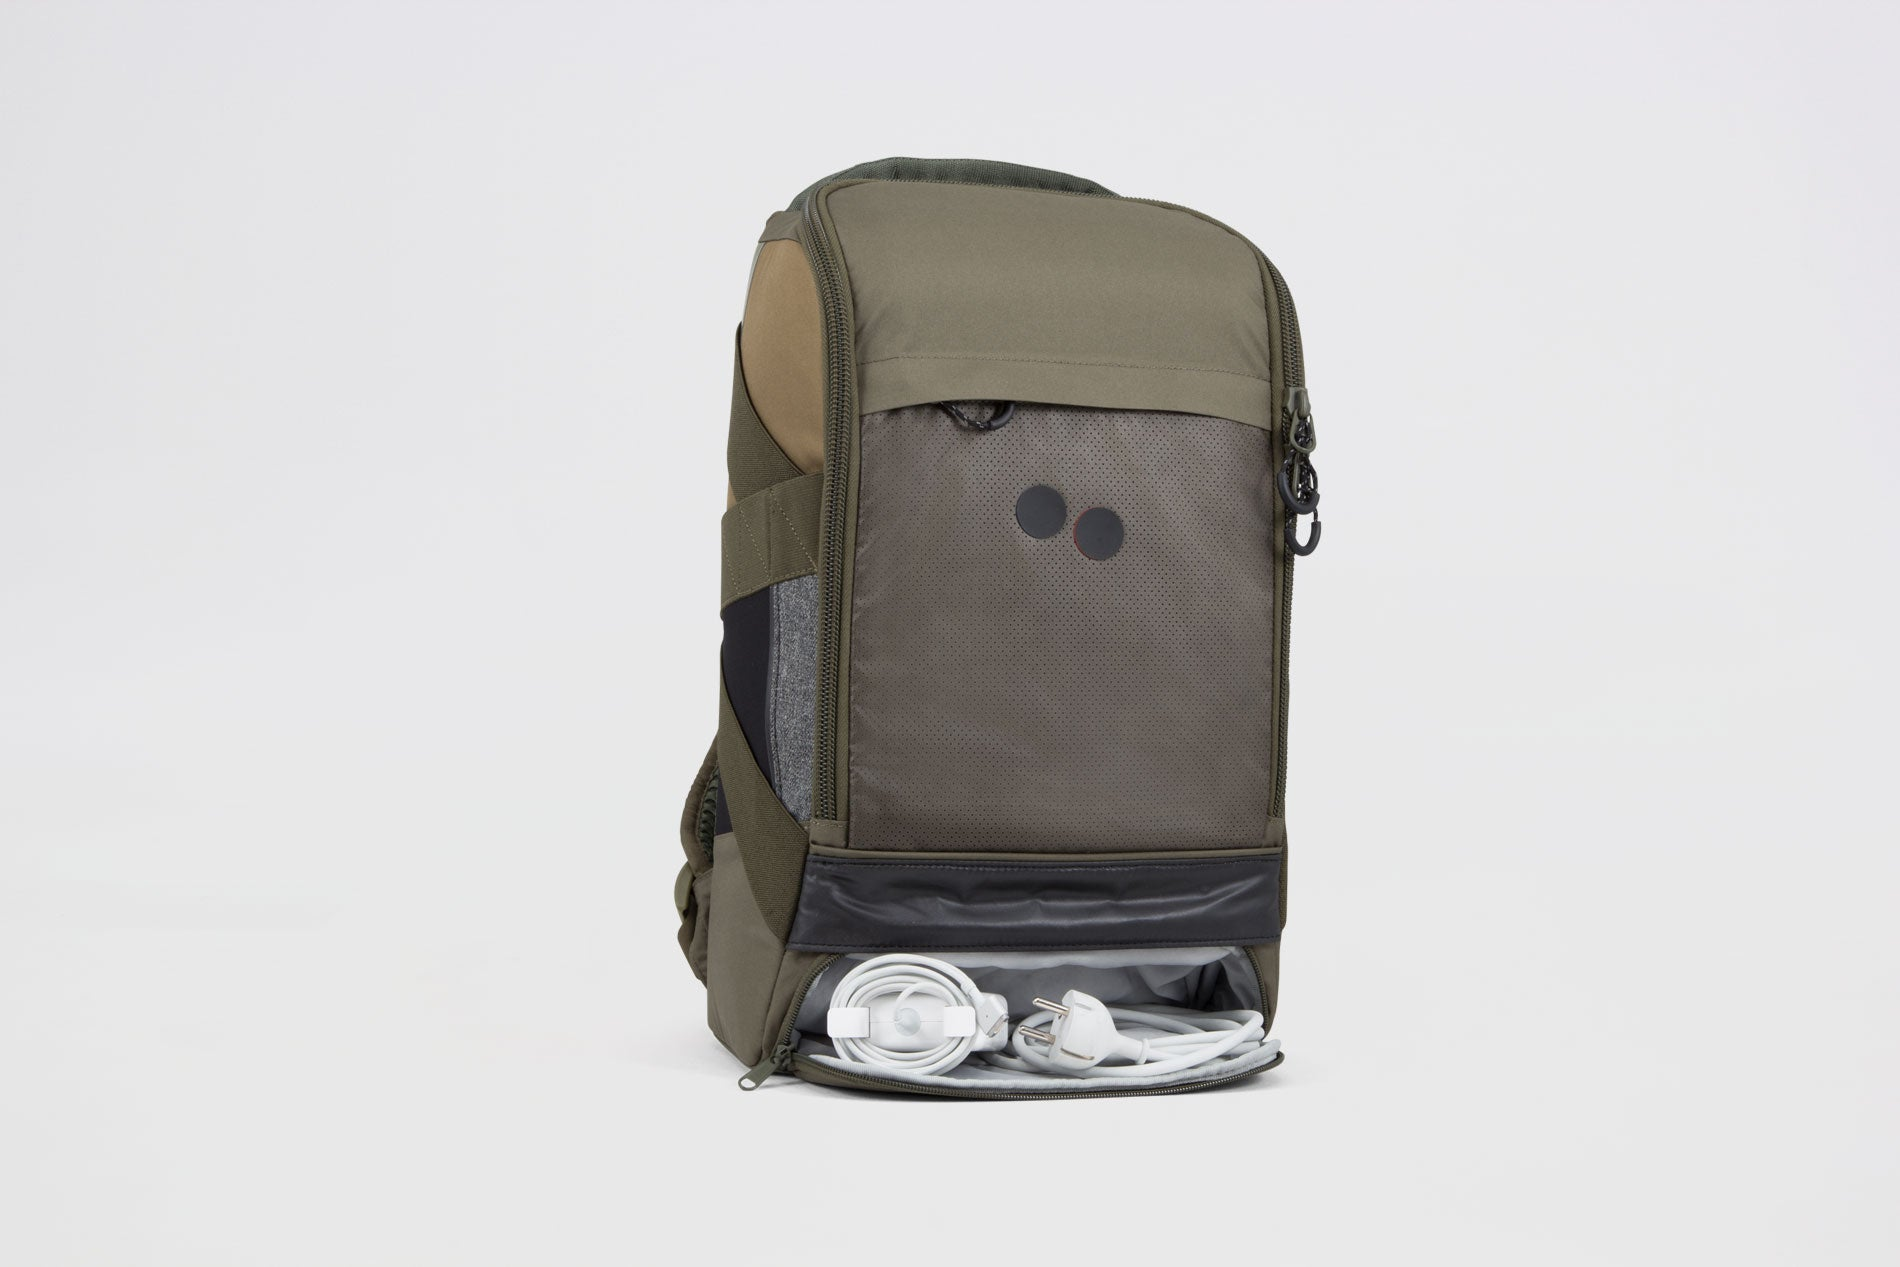 Pinqpong - Backpack Blok Medium (Tape Olive) PPC-BPM-001-253B